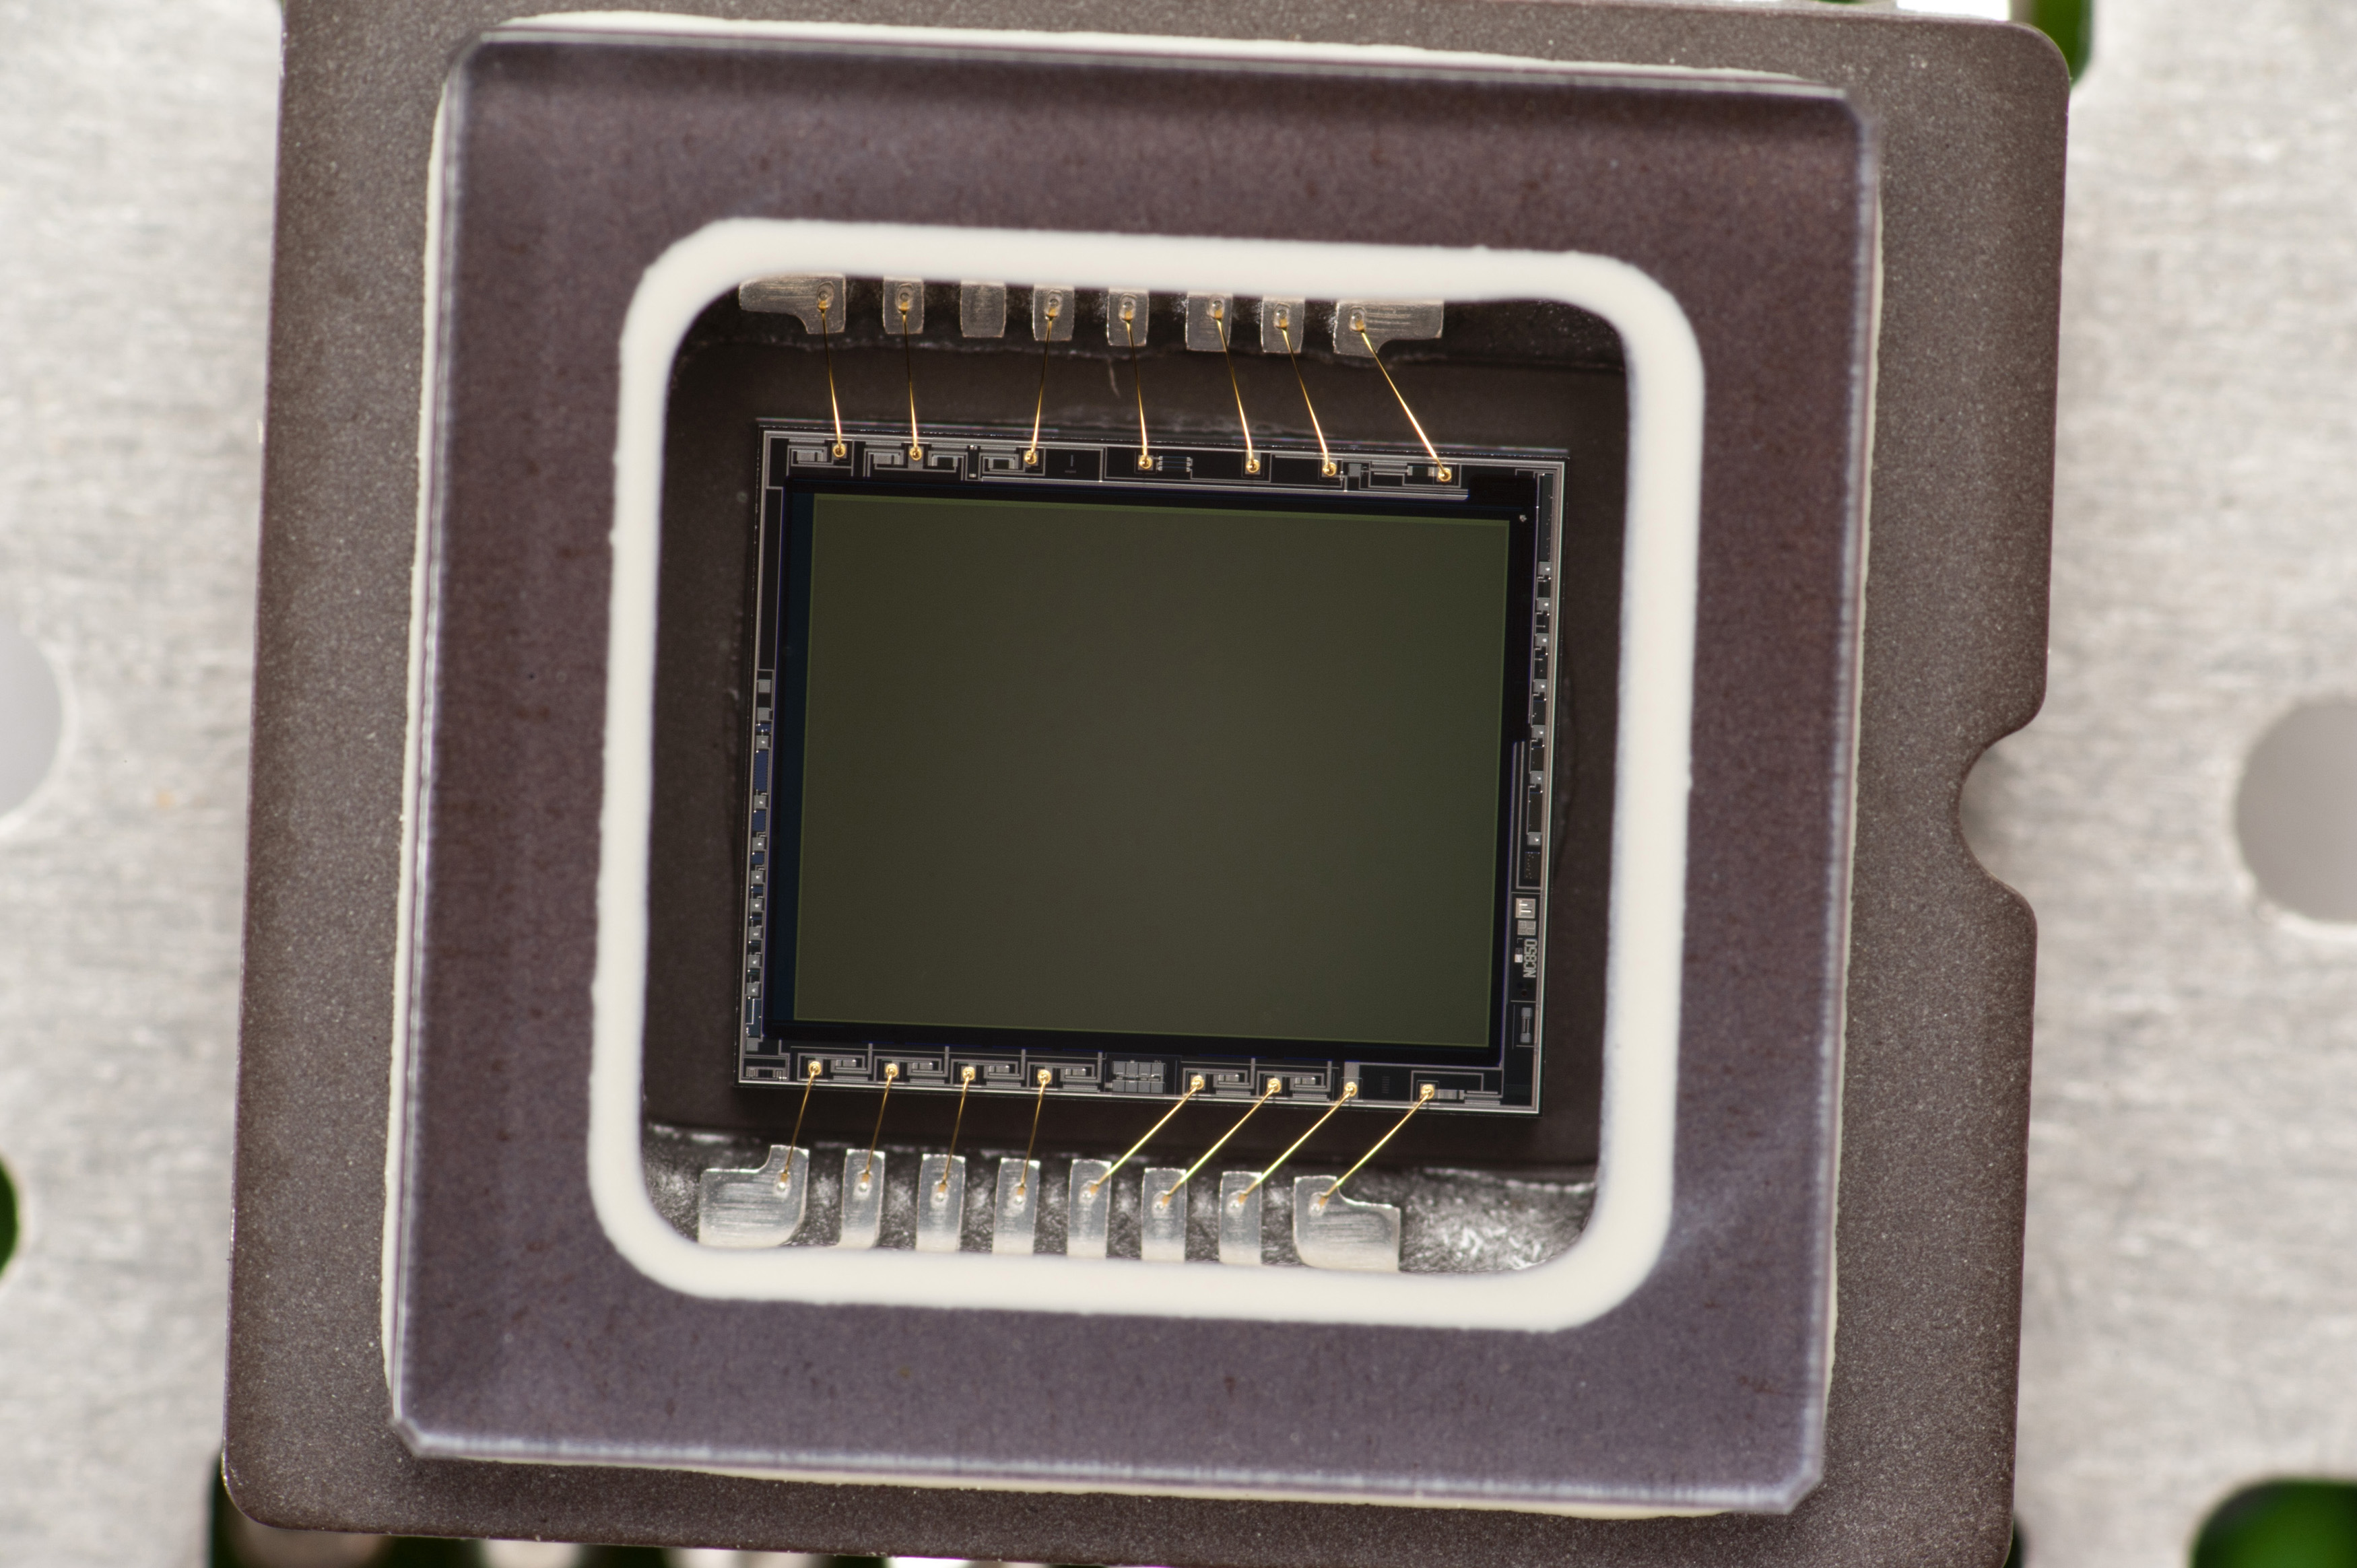 Digital camera CMOS sensor, which is an active-pixel sensor consisting of an integrated circuit containing an array of pixel sensors, each pixel containing a photodetector and an active amplifier.